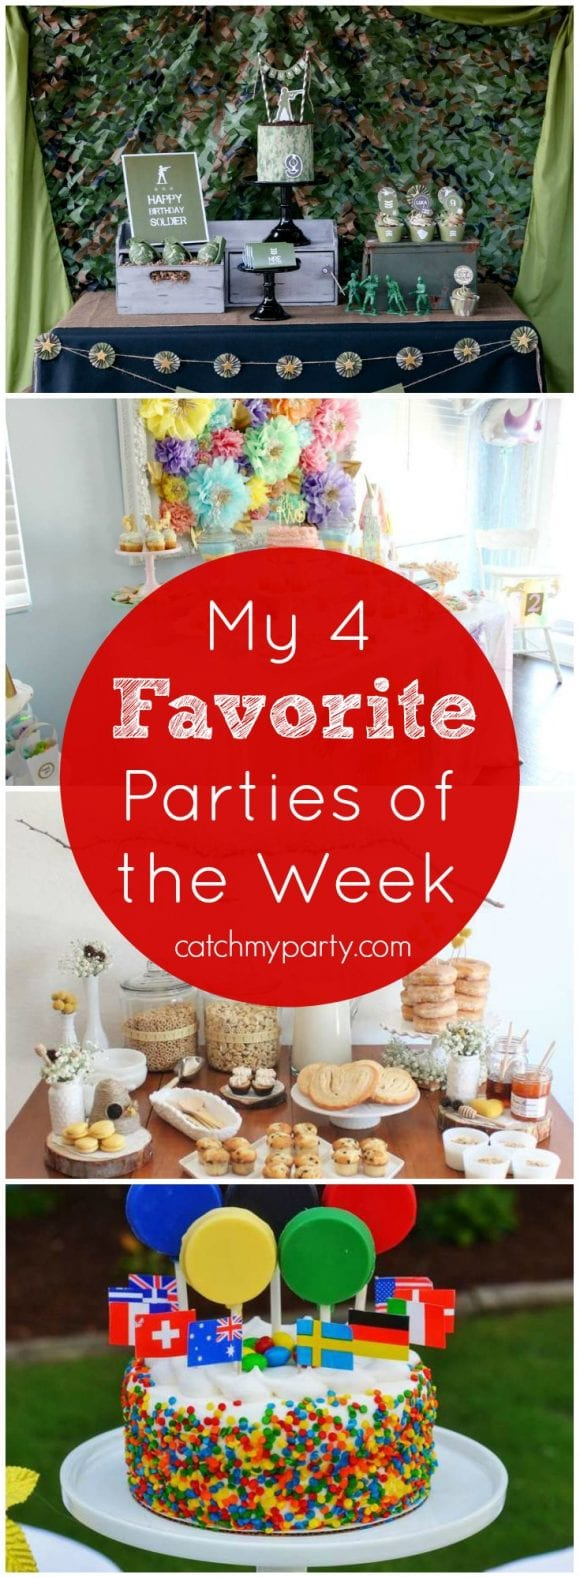 My favorite parties this week are a rainbow unicorn party, a toy soldiers party, a bumblebee shower, and an Olympics party | Catchmyparty.com